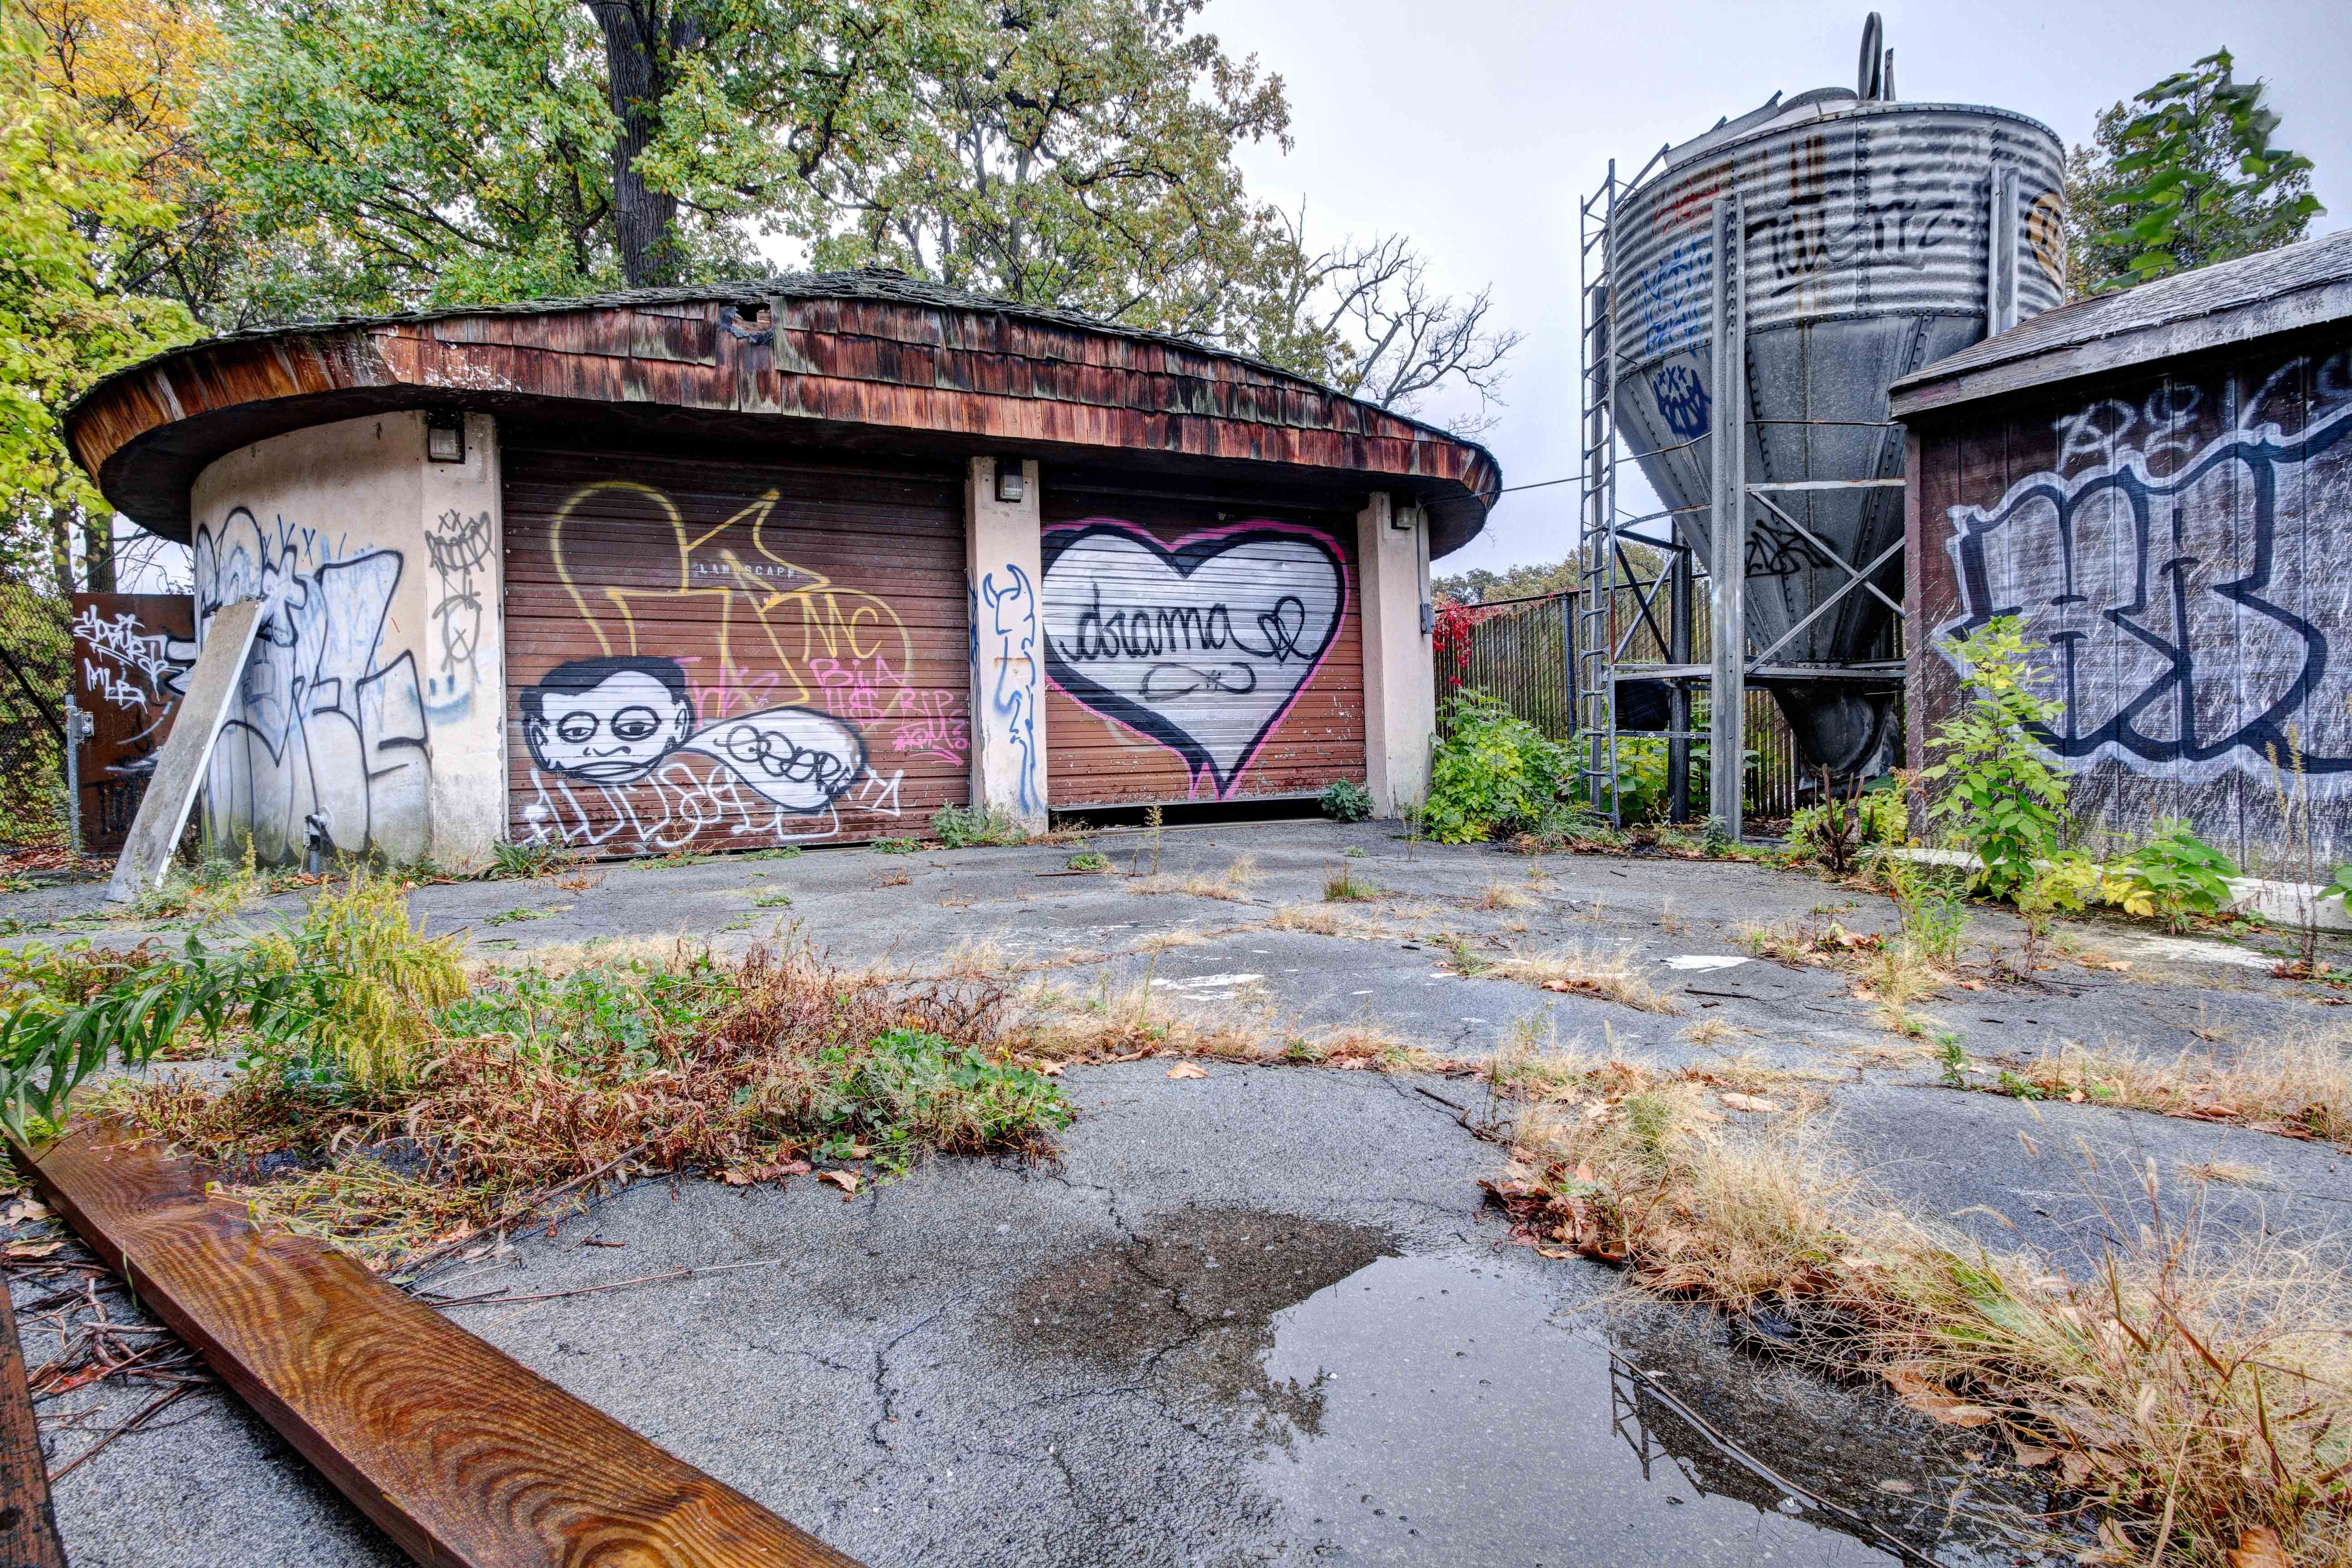 Abandoned Belle Isle Zoo in Detroit - marked up buildings